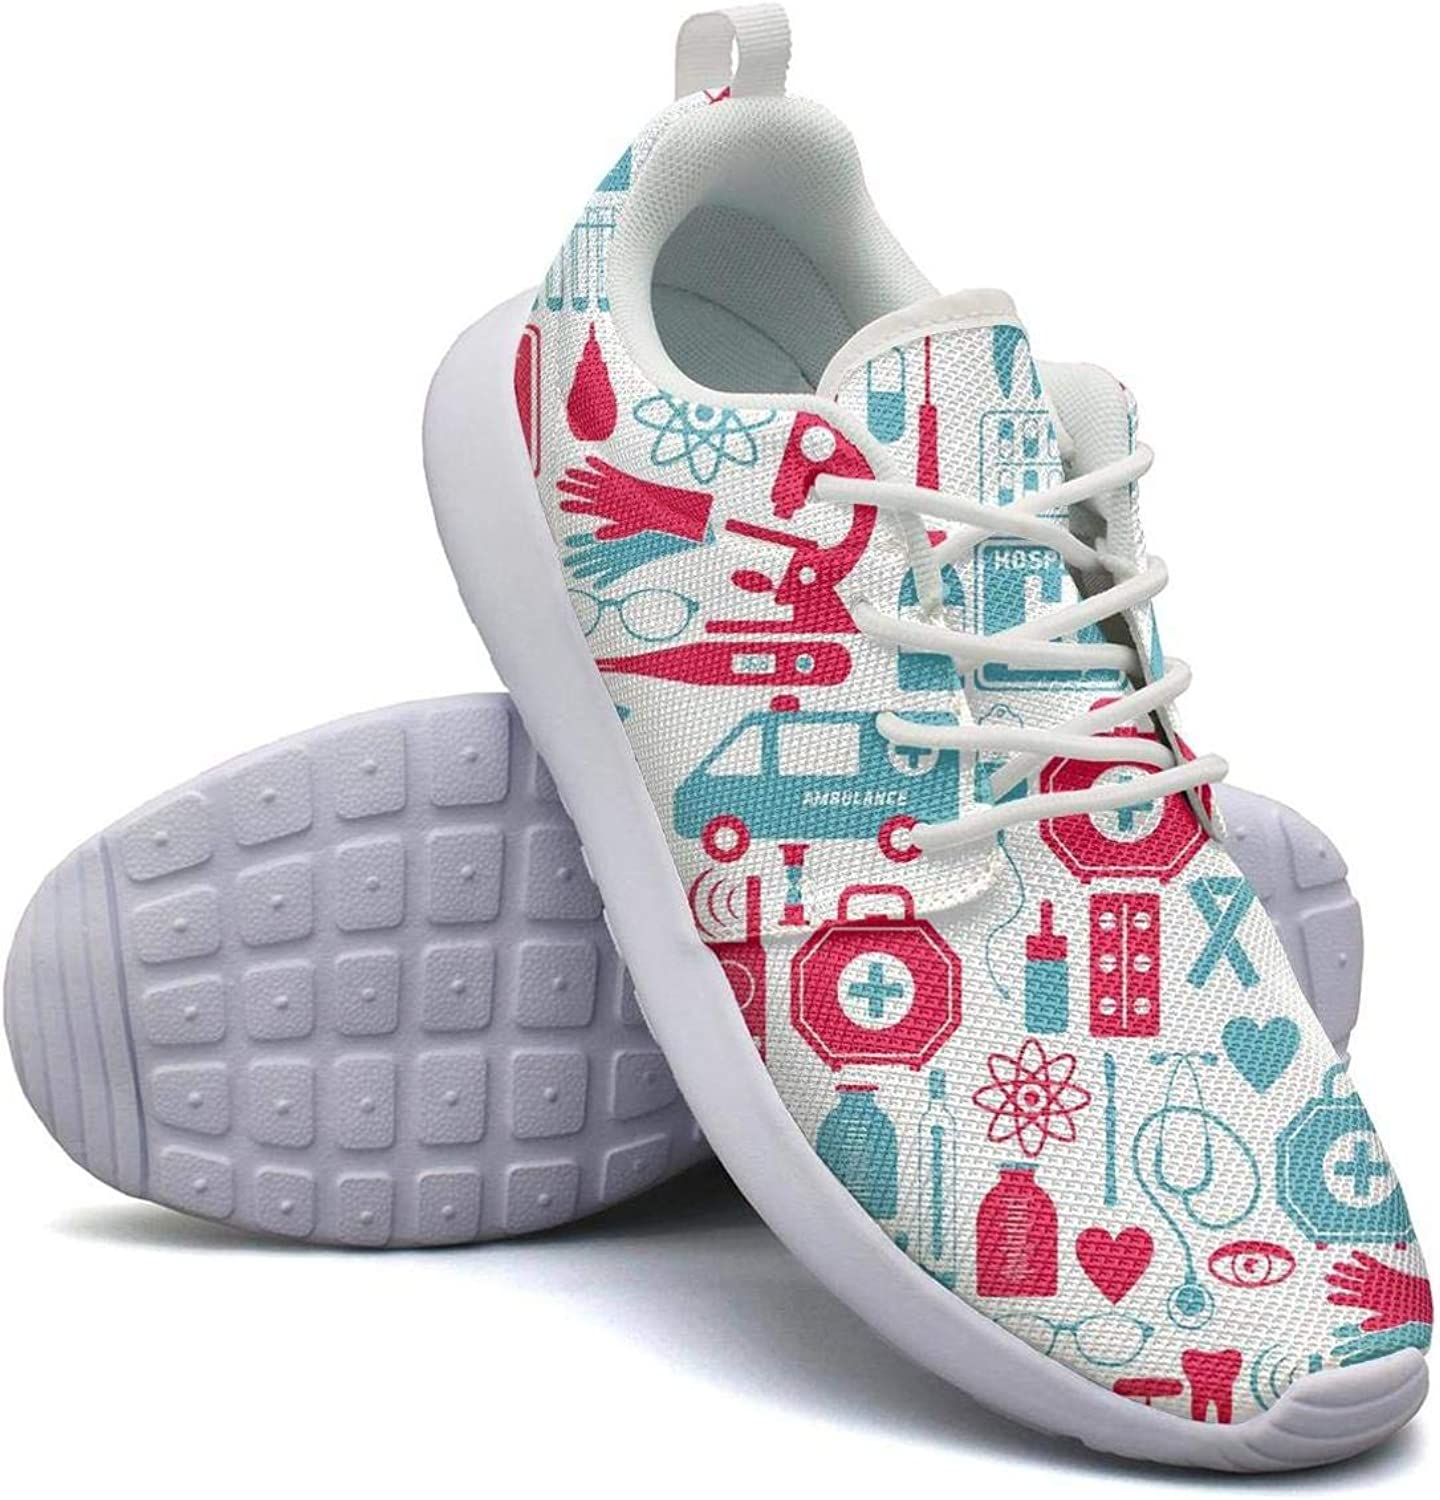 Amazon.com: Medical icons health care syringe Running Shoe Casual Sneakers  Womens Shoes: Clothing